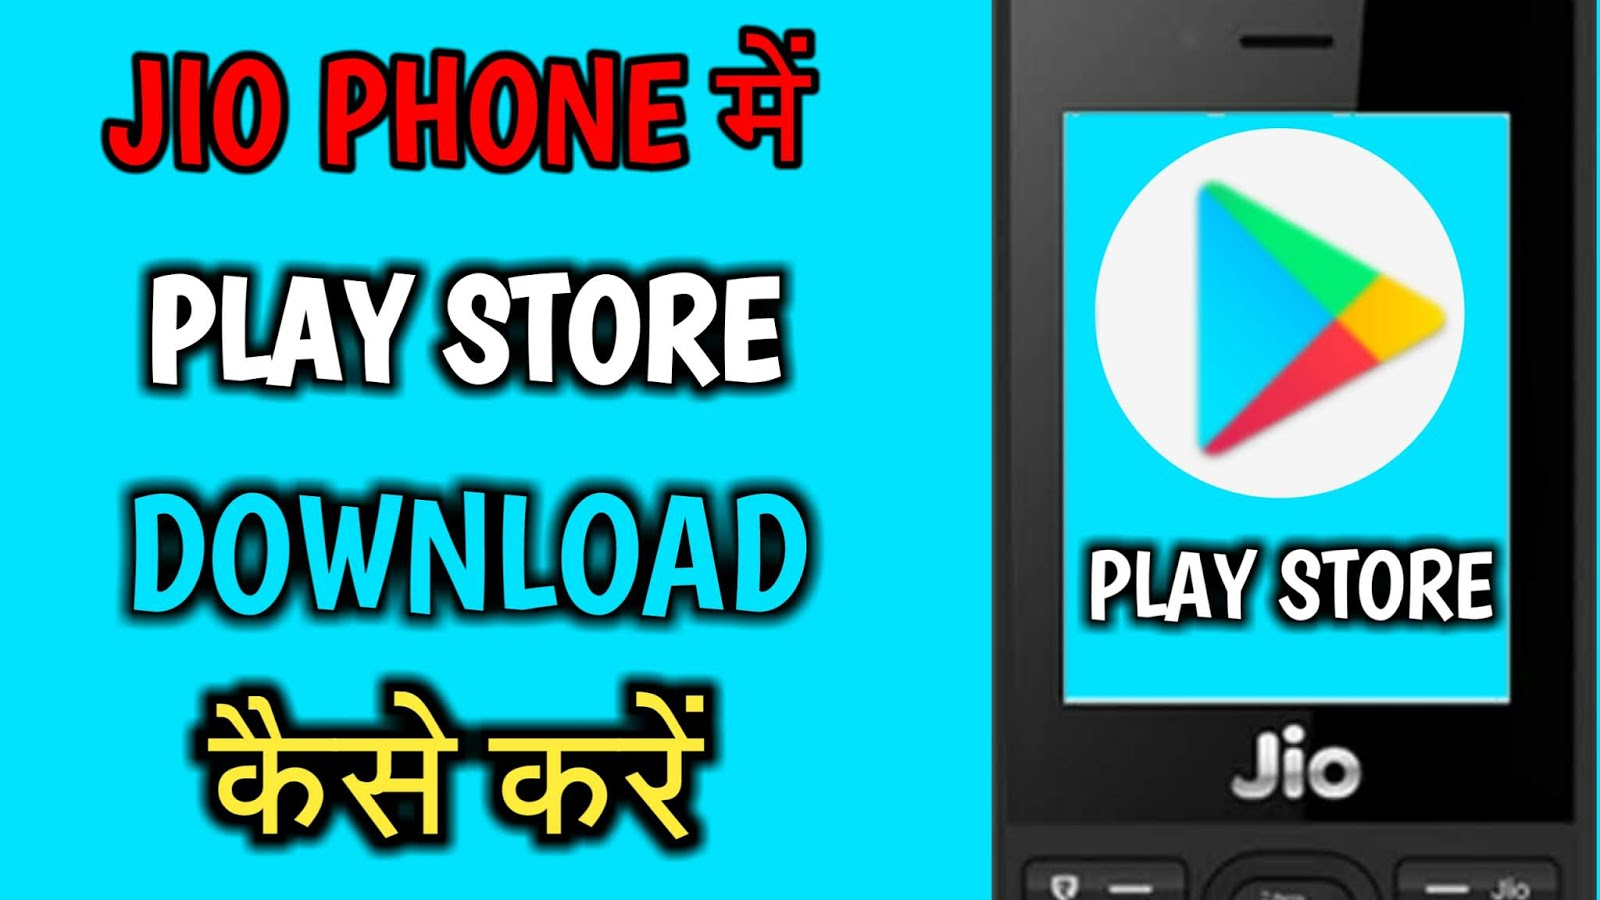 Jio phone me play store kaise download kare - how to